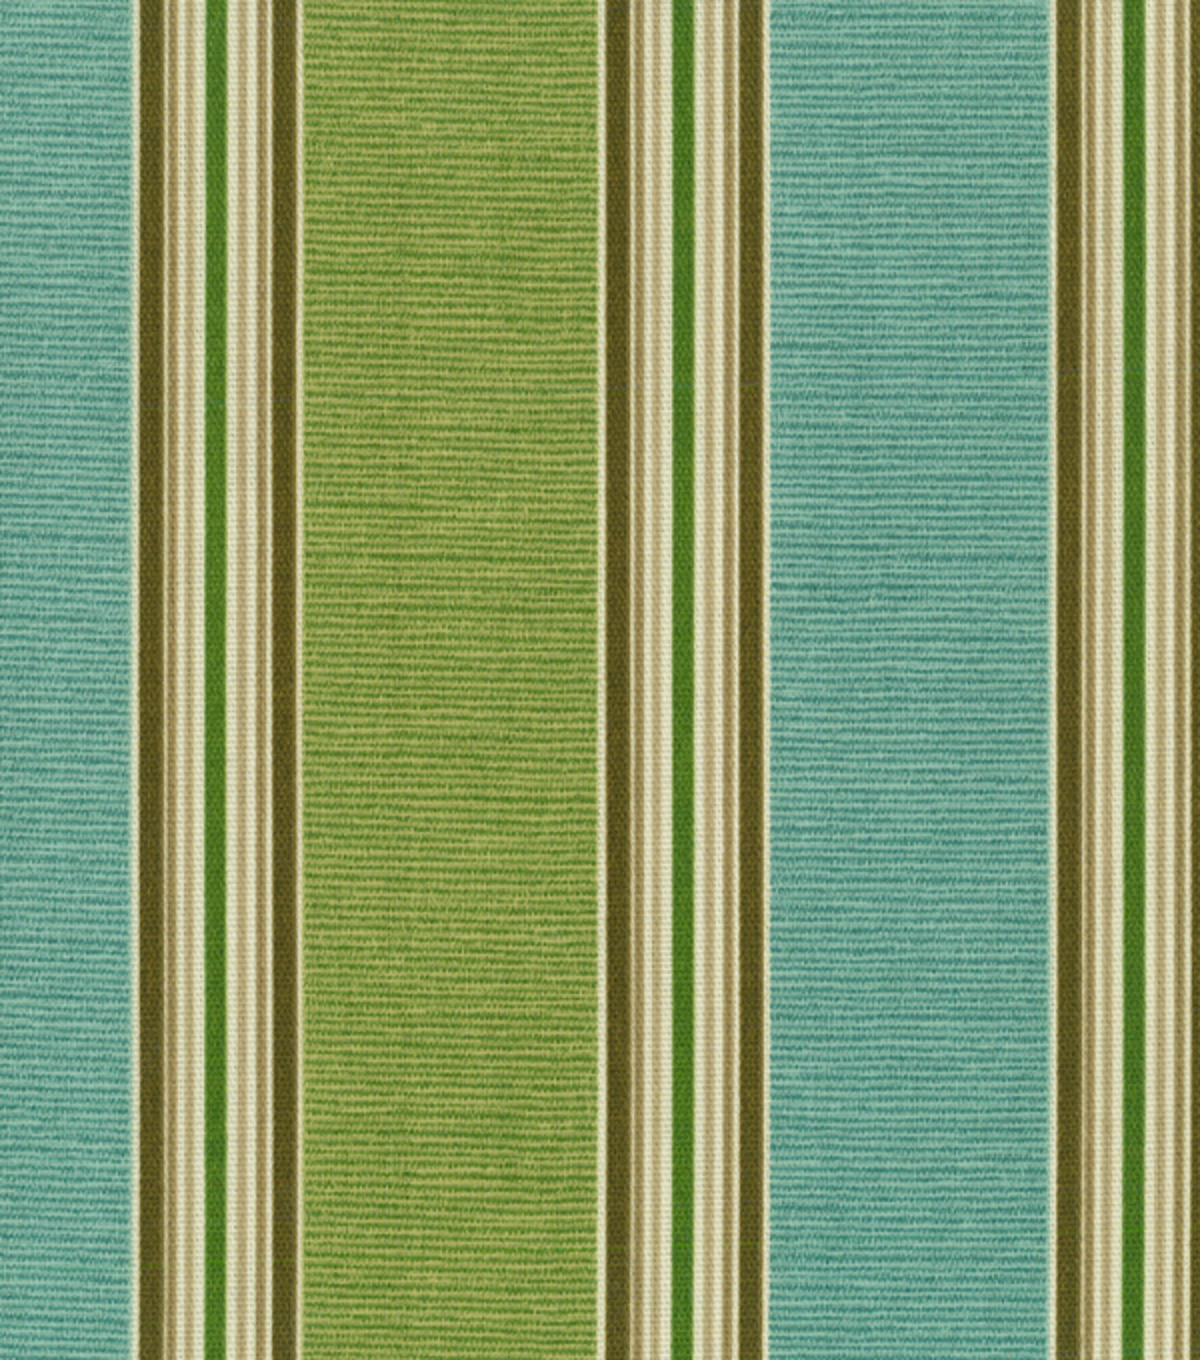 Home Decor 8\u0022x8\u0022 Fabric Swatch-Solarium Mainland Surf